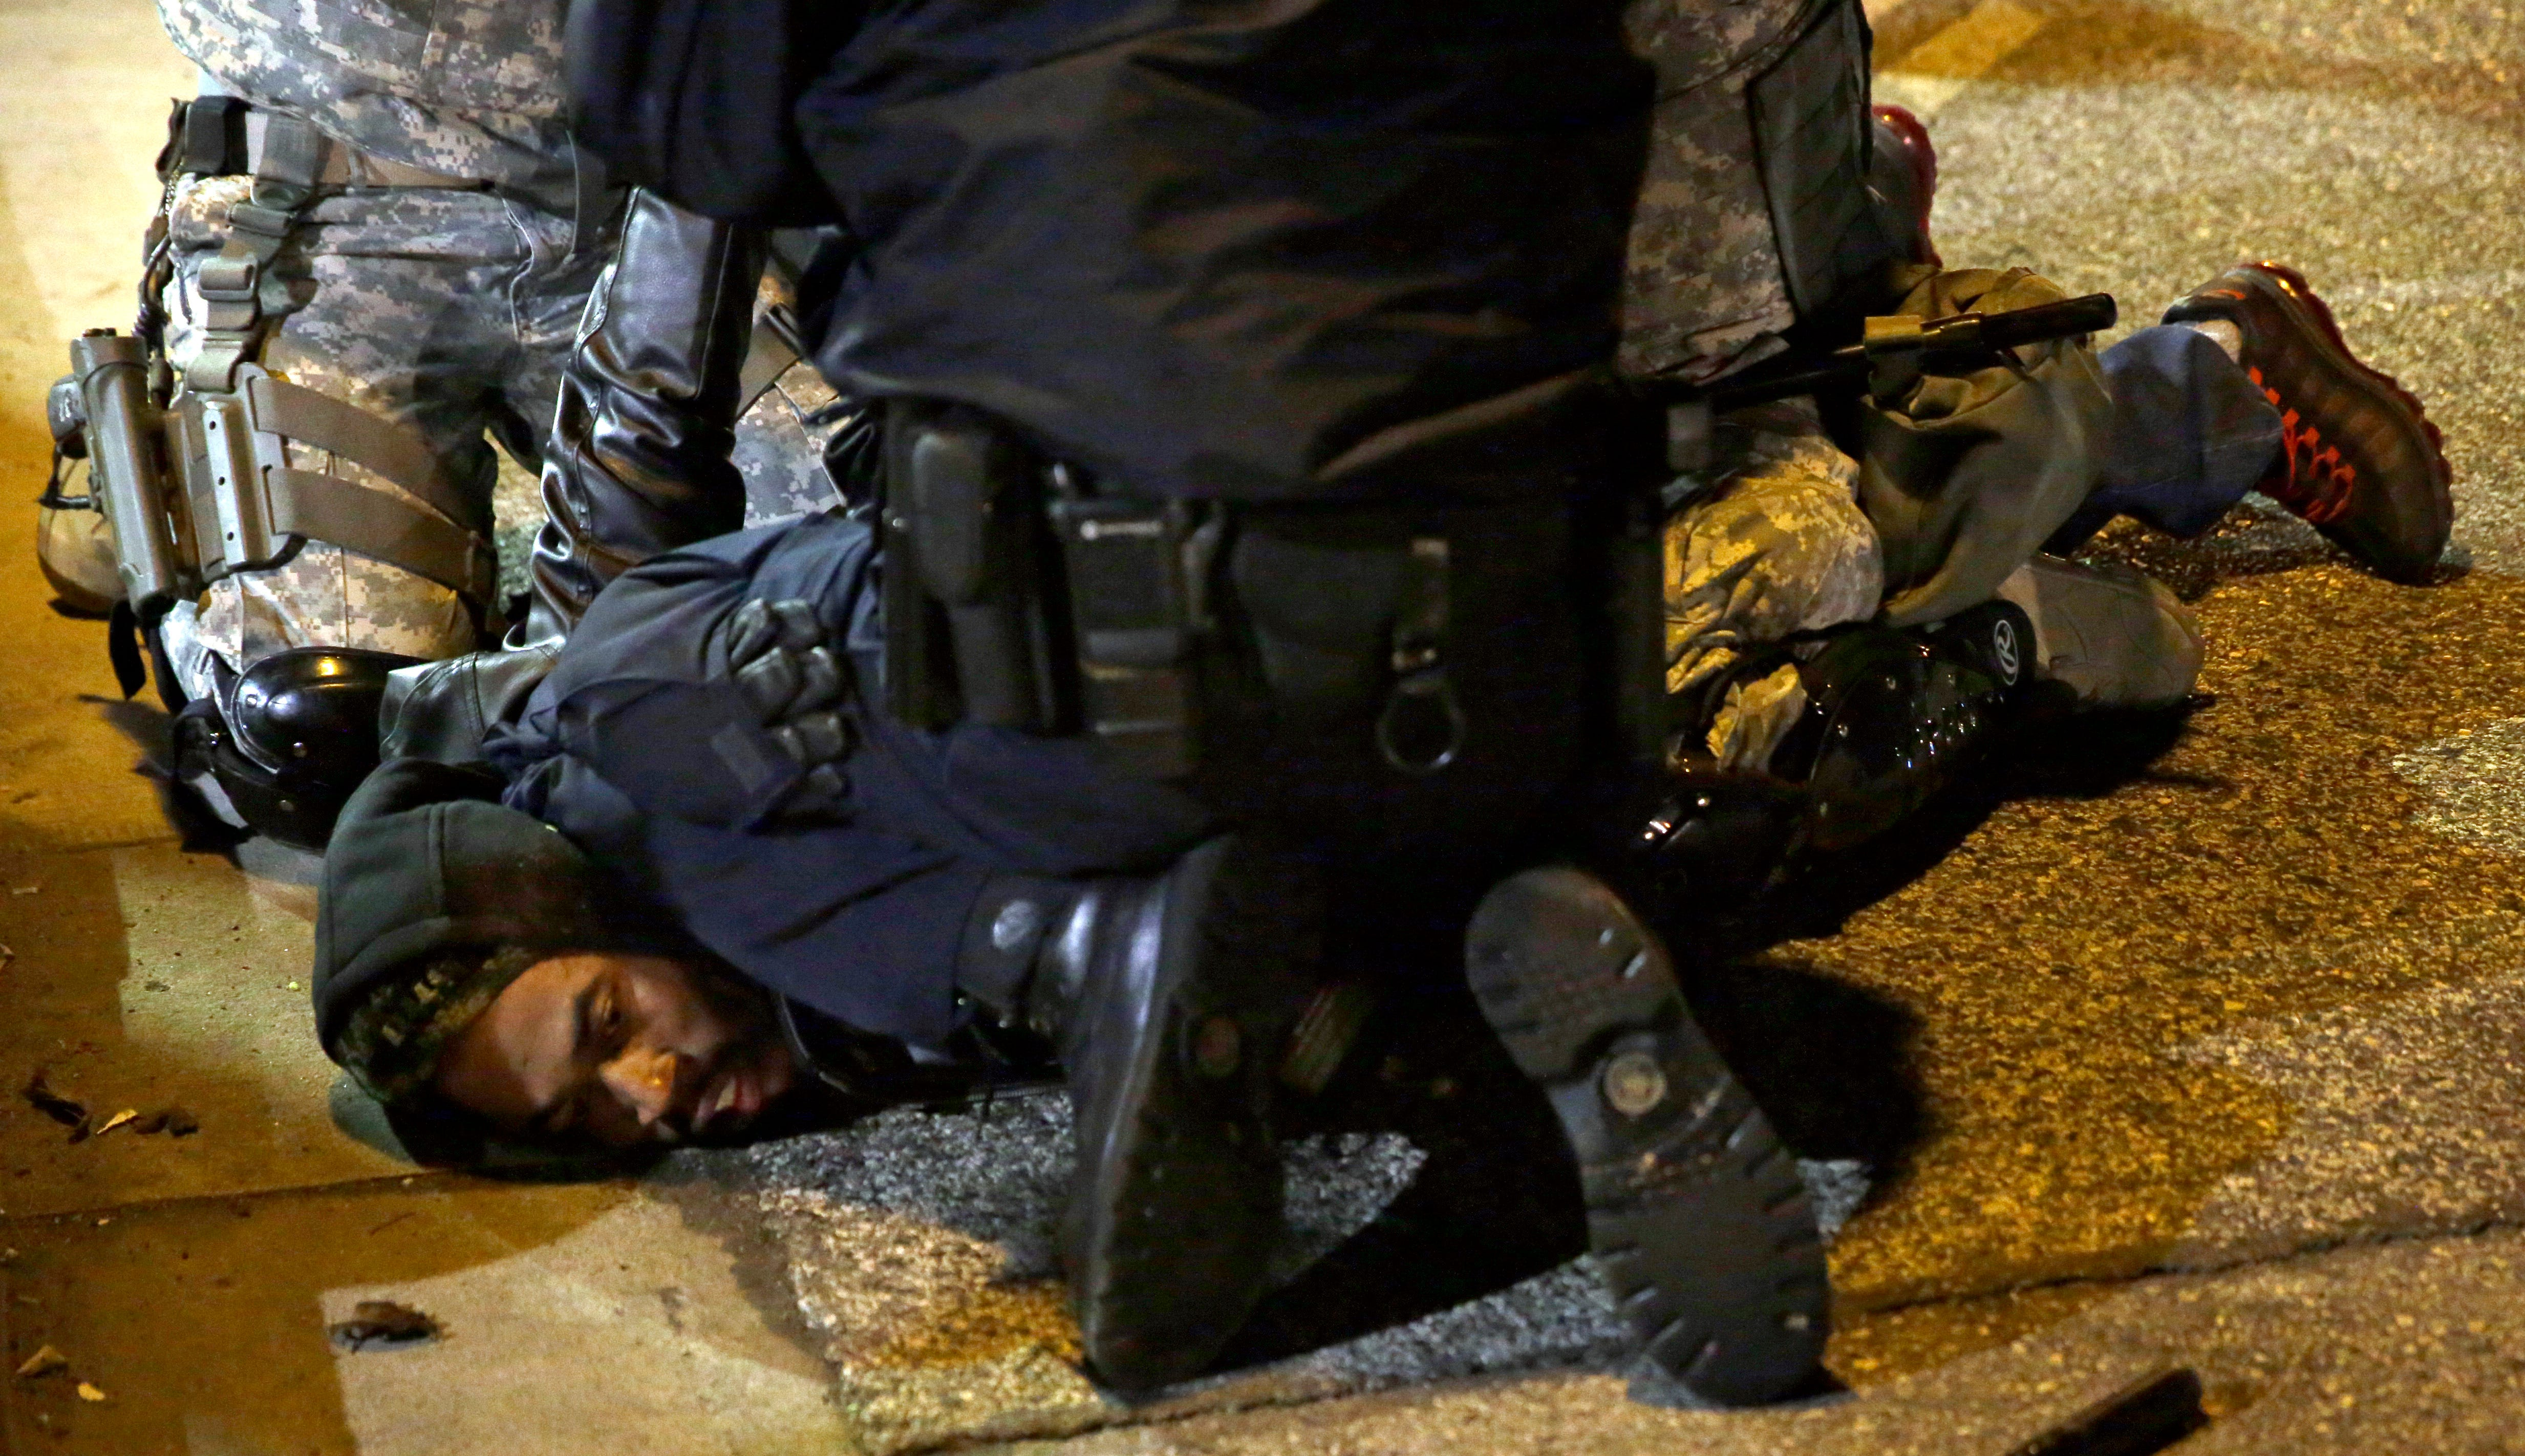 MacNore Cameron was arrested on Nov. 28, 2014, while protesting in Ferguson, Missouri, and restrained using the same knee-to-neck hold that killed Minneapolis resident George Floyd.